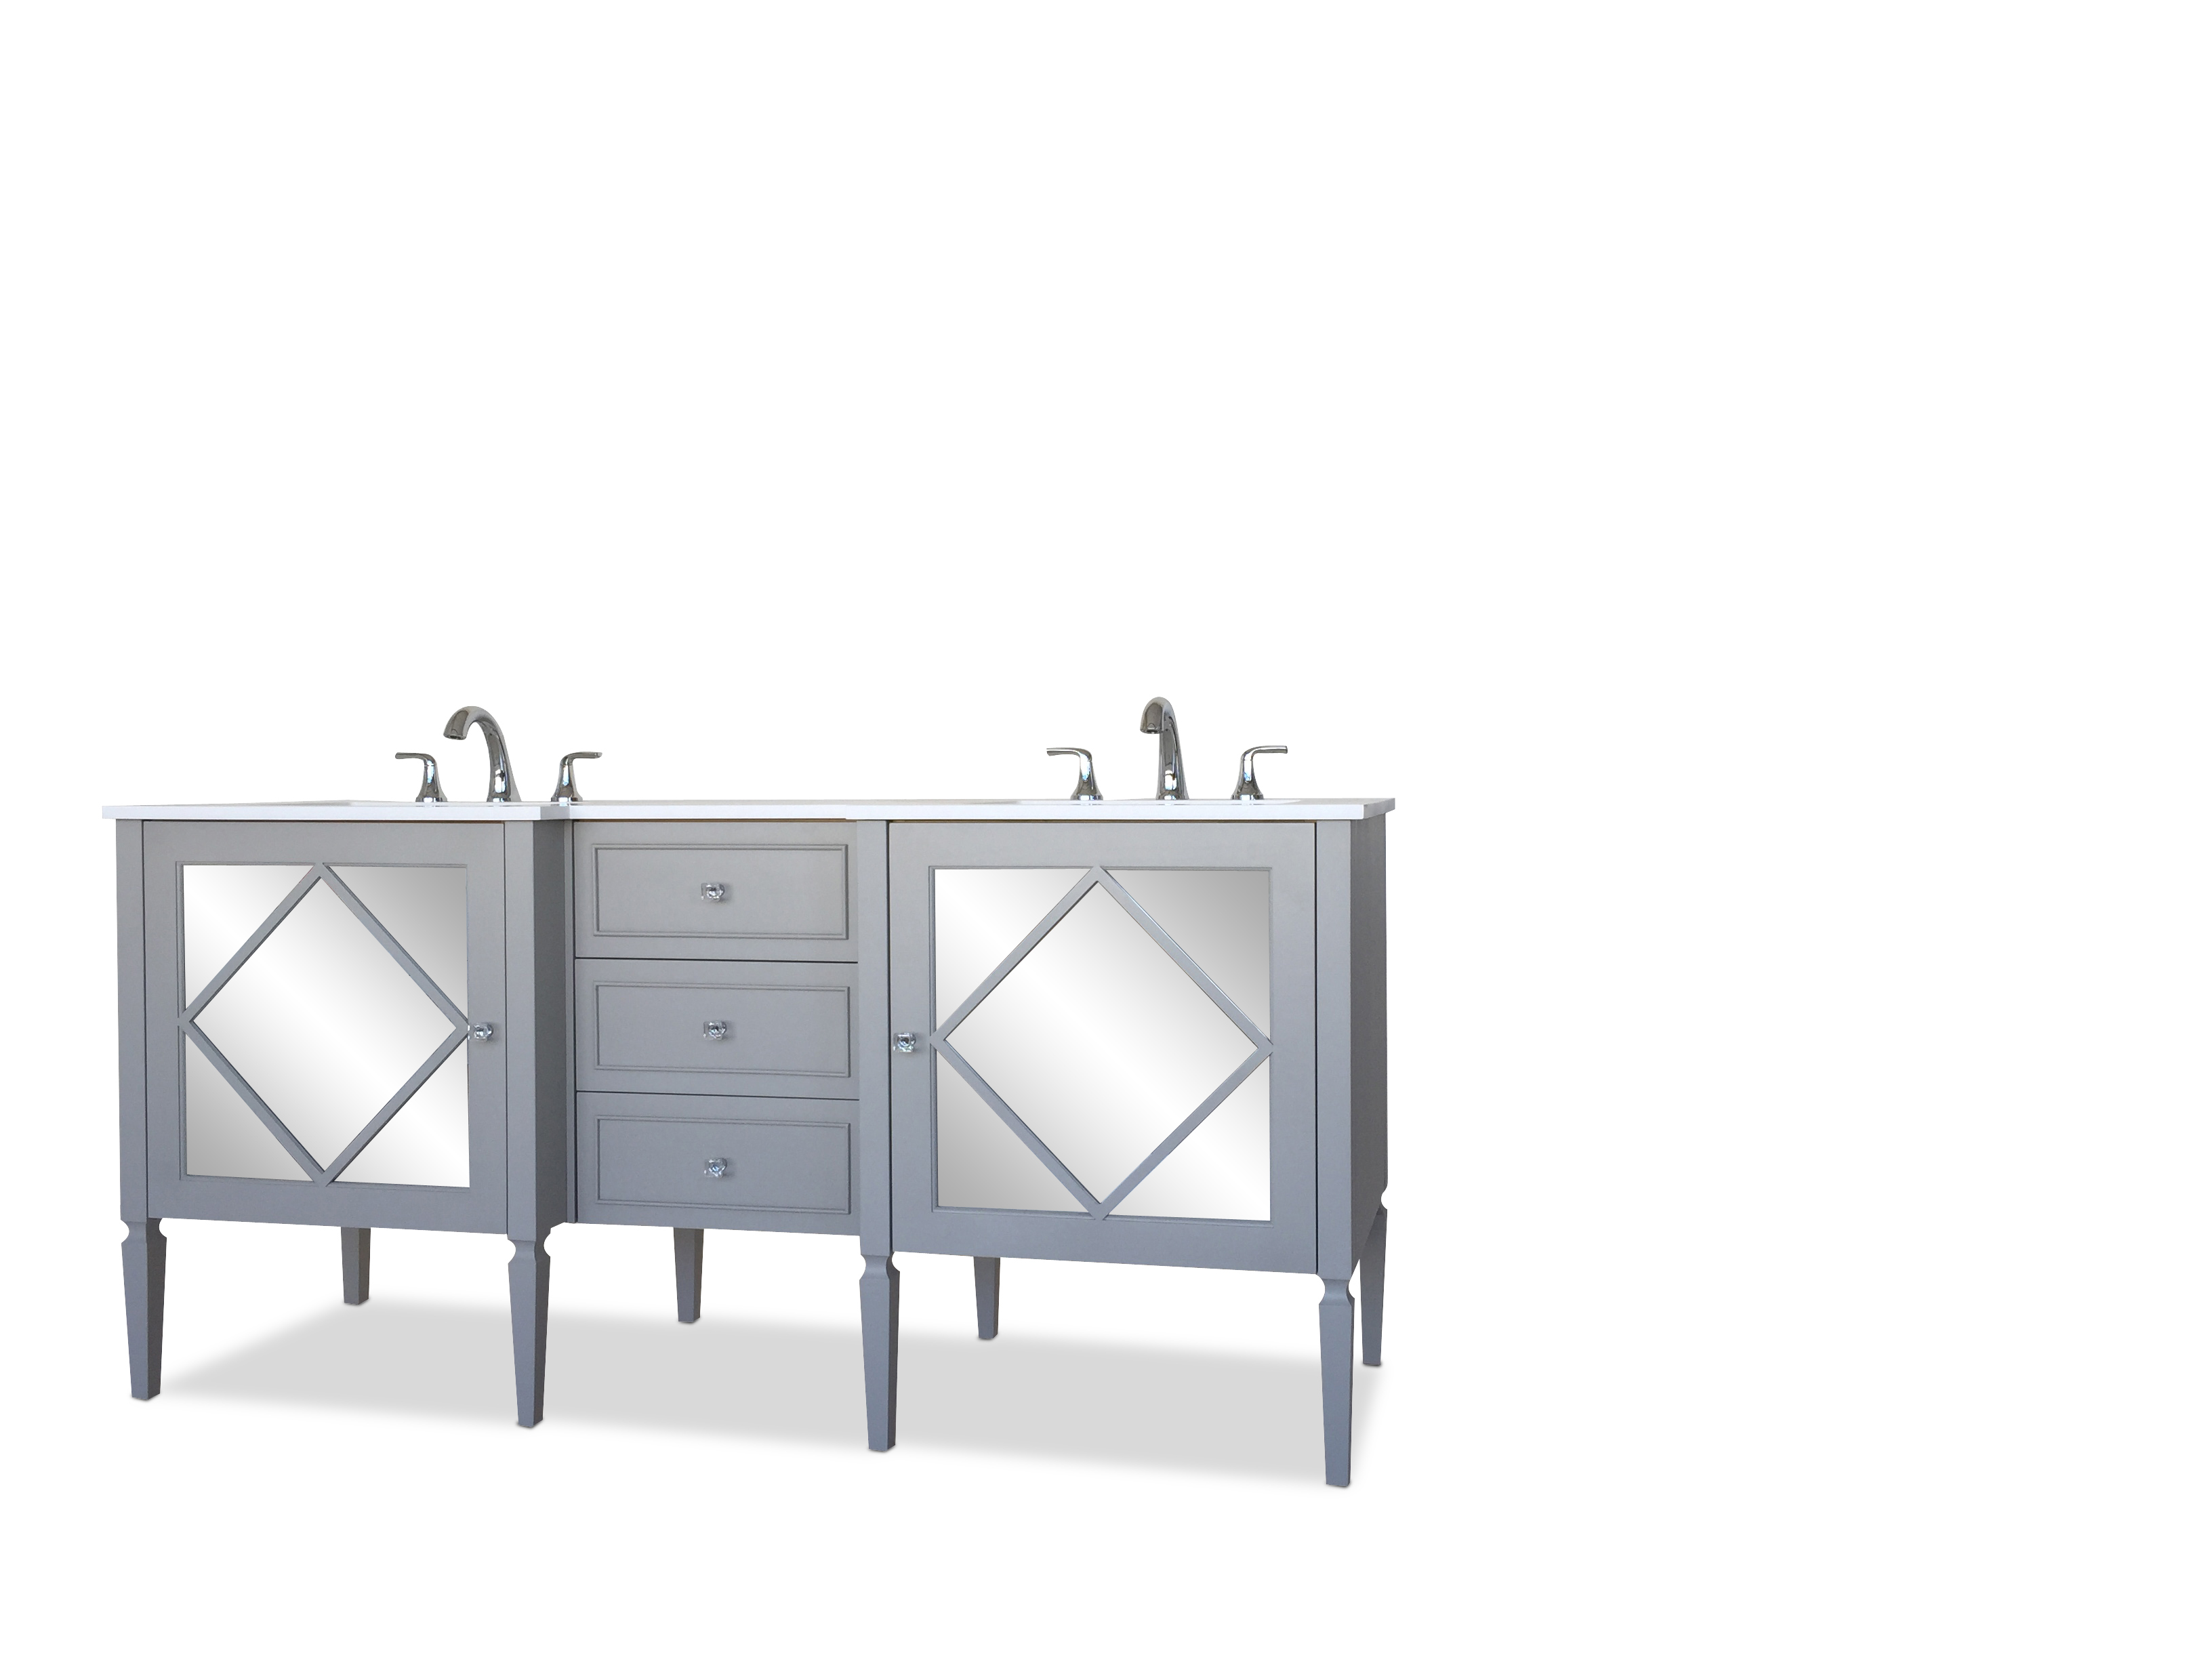 drawers inspiring home enthralling modern decoration interior nu sink with double vanity vanities ideas bathroom gallery